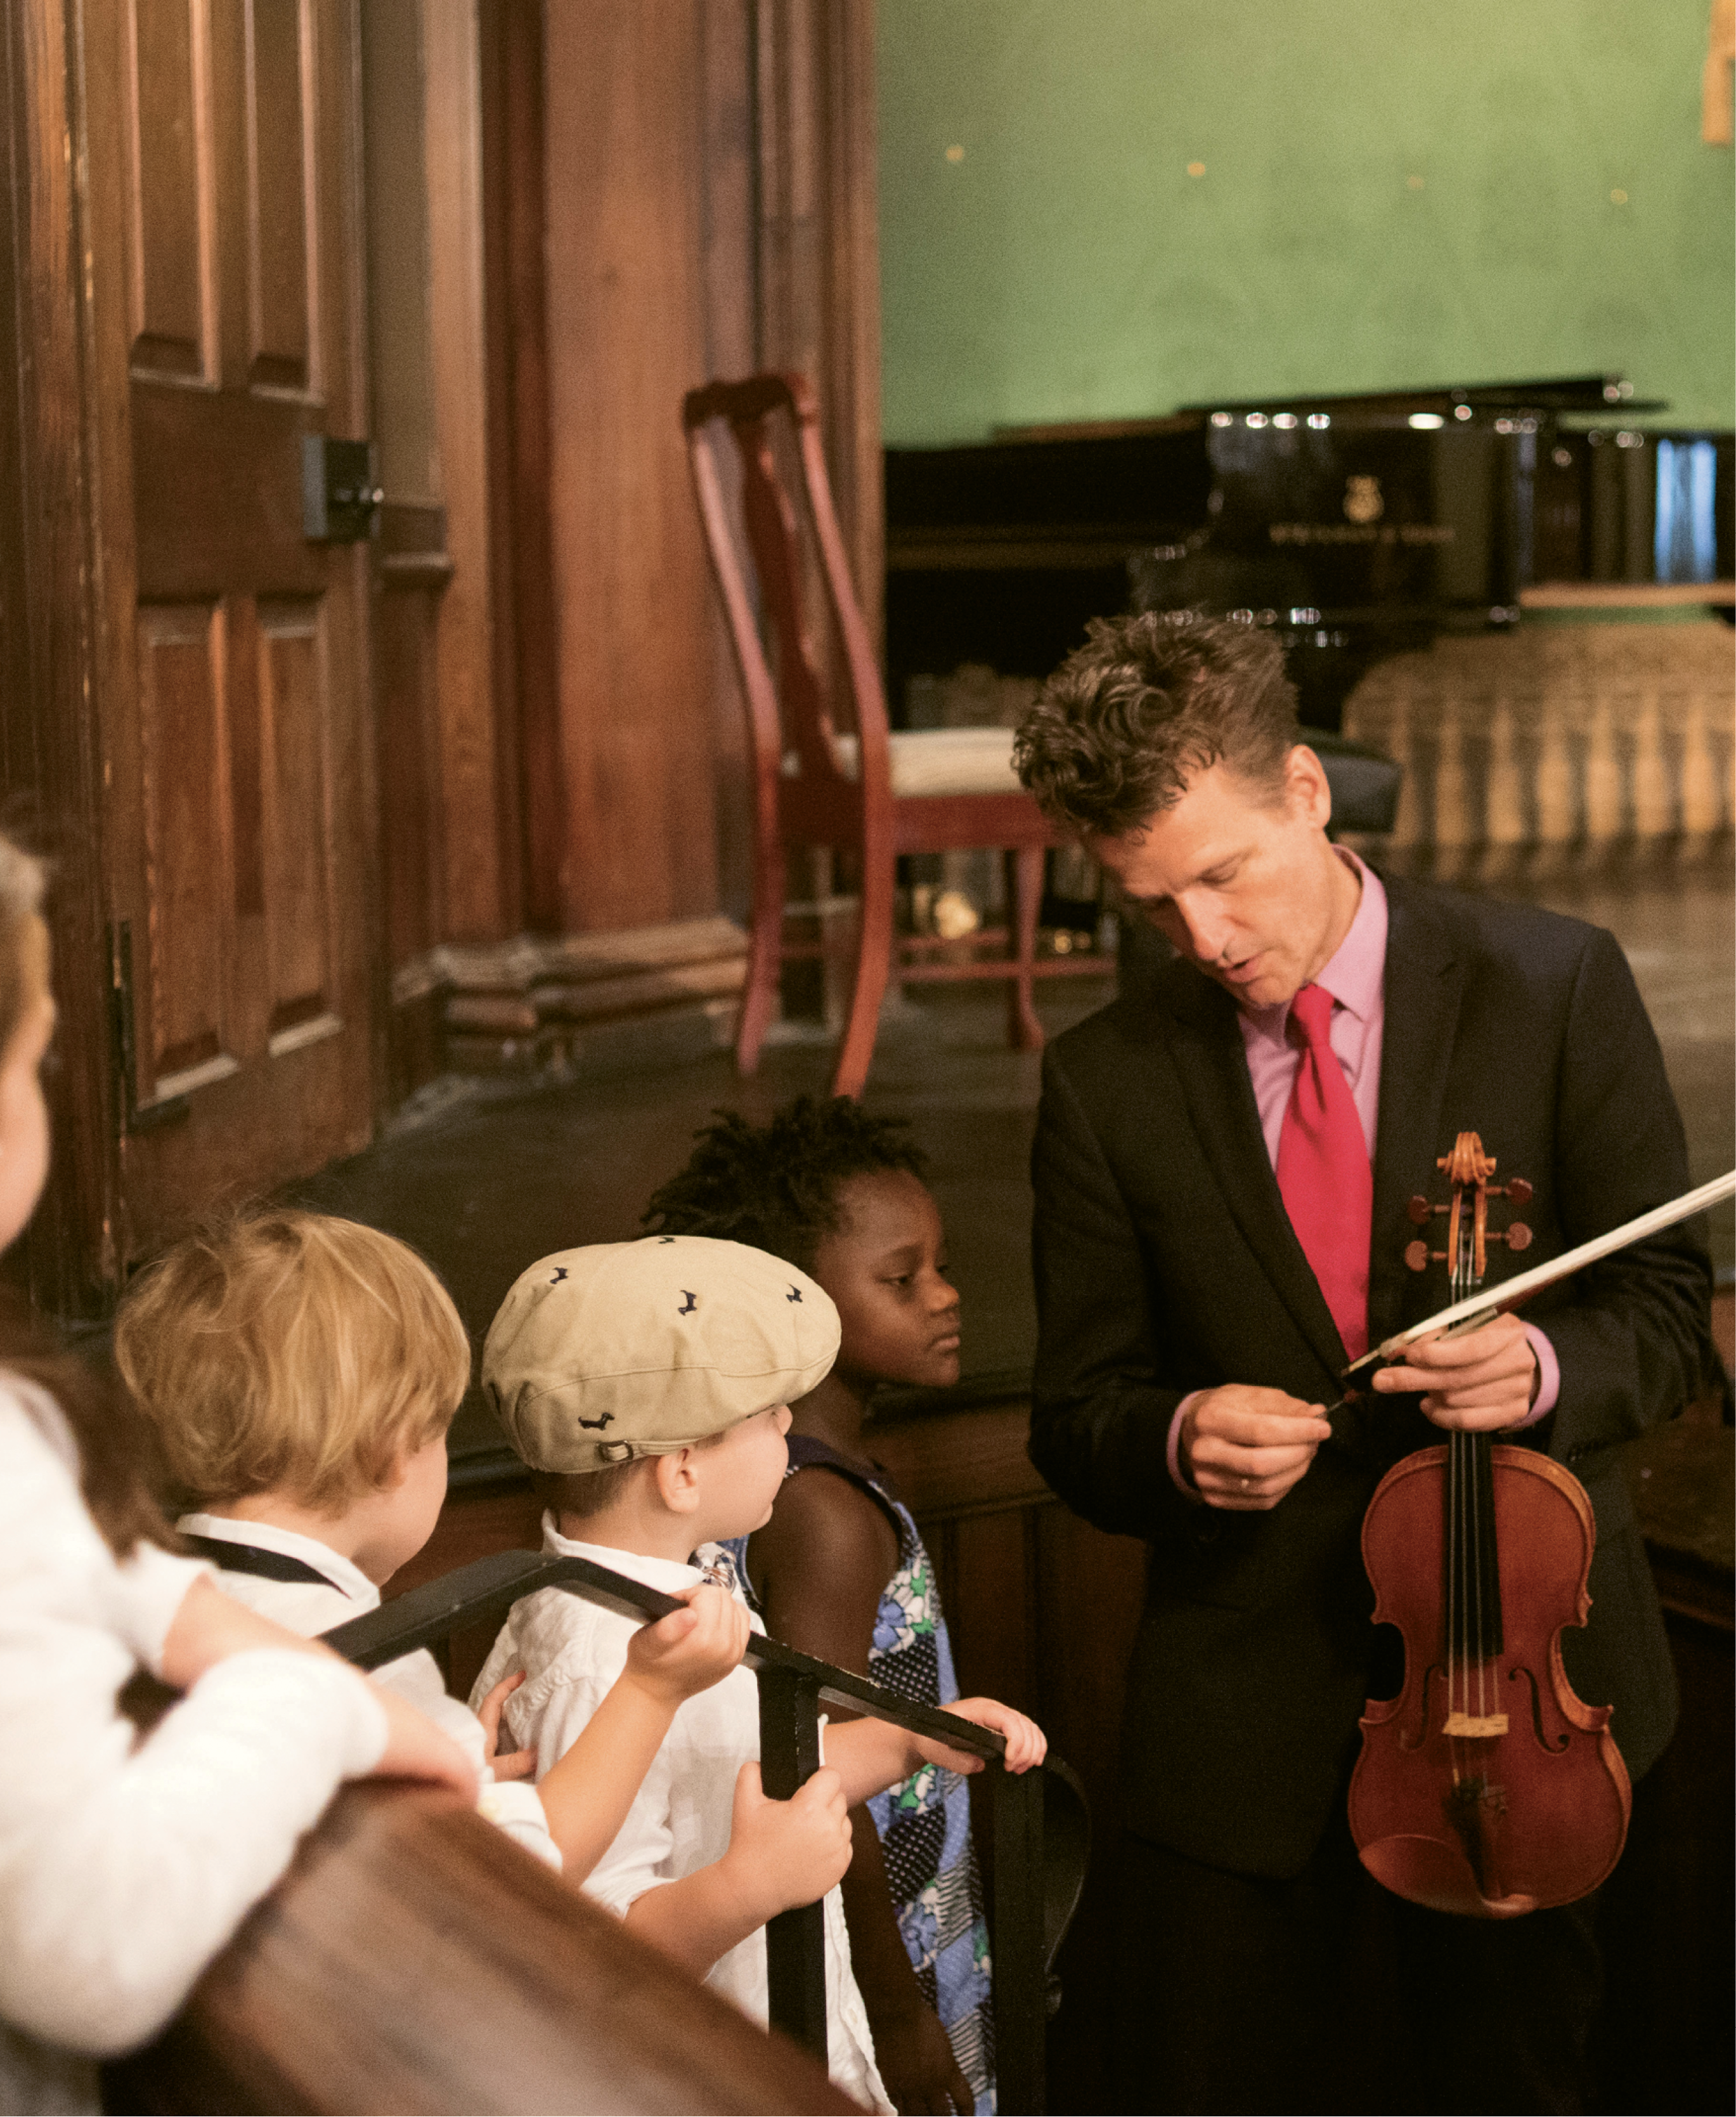 Child's Play: Every festival season, Nuttall spends about six hours with local kids for outreach programs. Here, some children get a close look at Nuttall's violin and bow after a special concert for individuals with autism and their families.